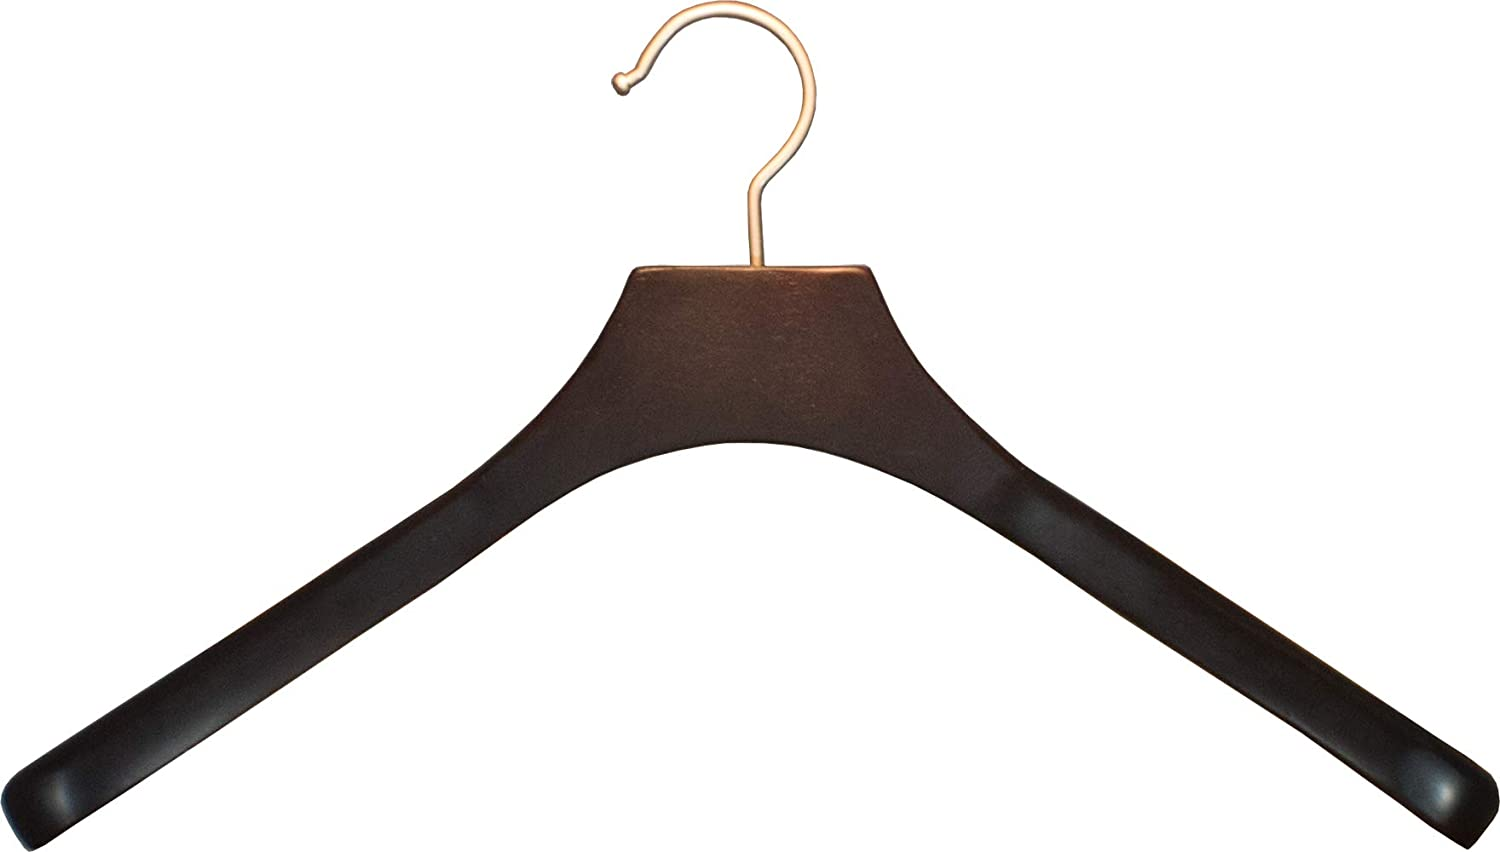 Deluxe Oversized木製コートハンガー、Contoured Hangers with 2 Inch Wide肩とつや消しクローム回転フックby the Great Americanハンガー会社 Length 18